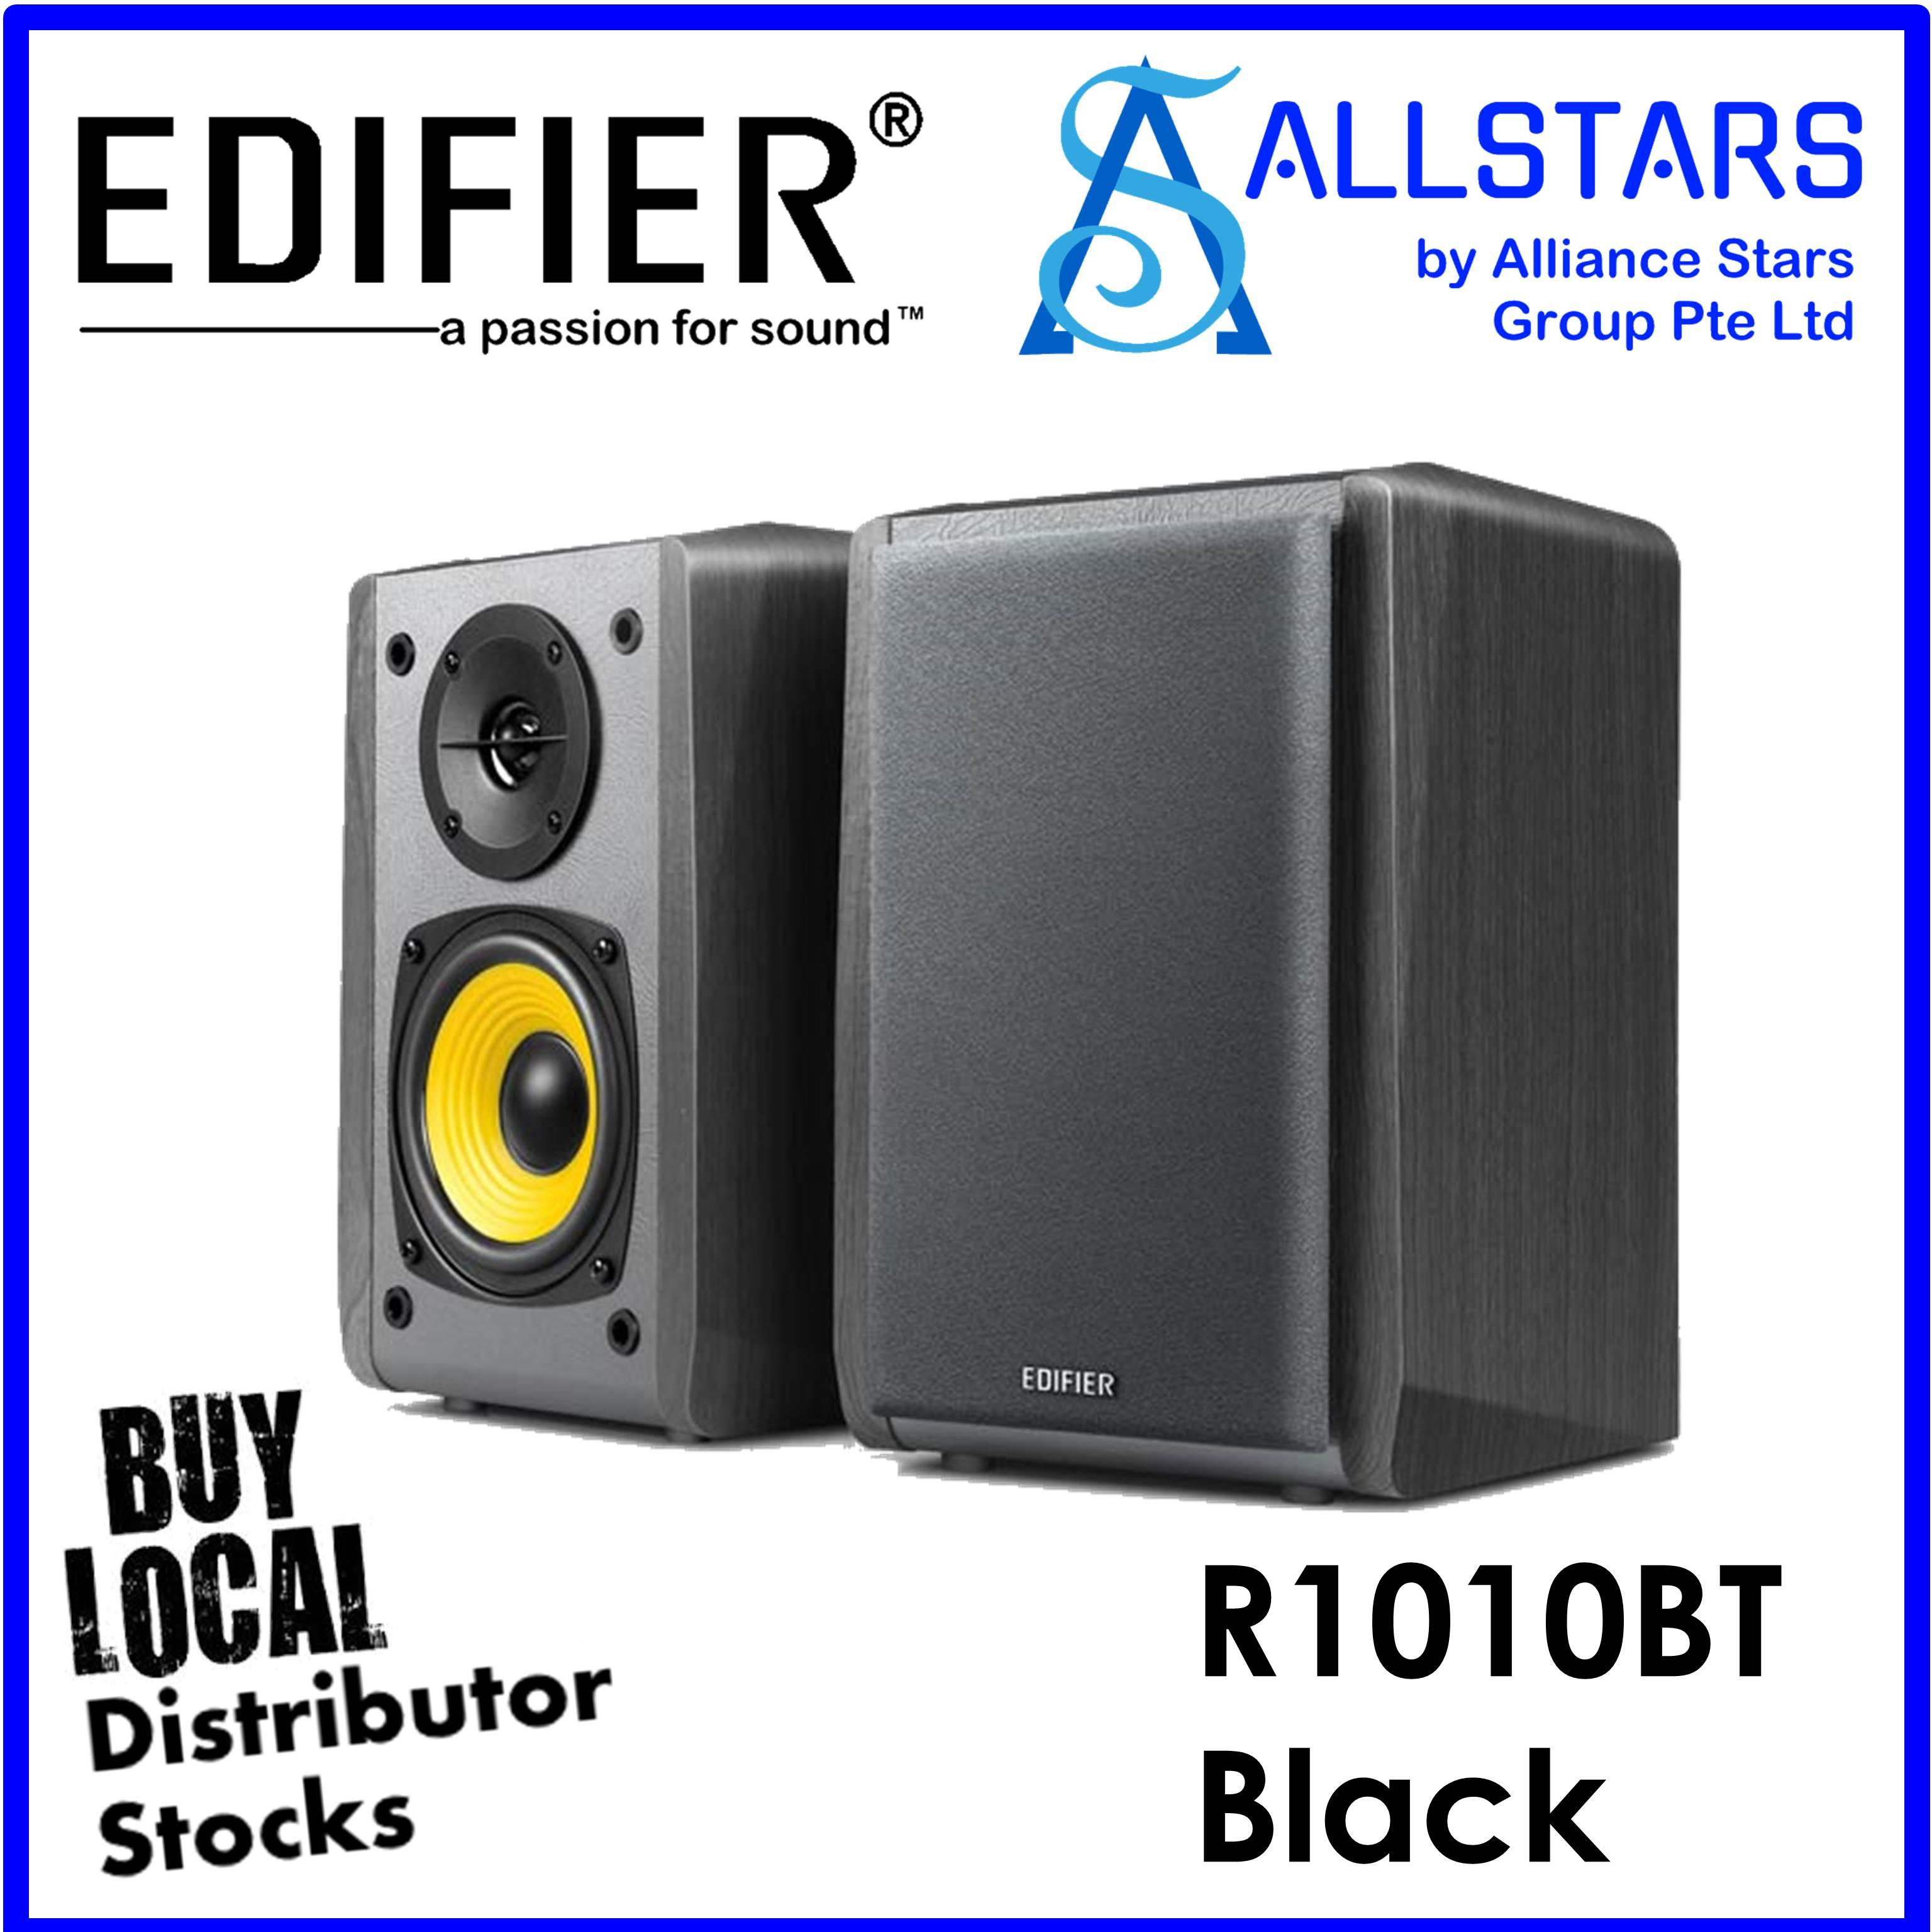 (ALLSTARS : WE ARE BACK / 9.9 PROMO) EDIFIER Black R1010 BT / R1010BT 2.0 Speaker / Bluetooth (Local Warranty 2years with Ban Leong)